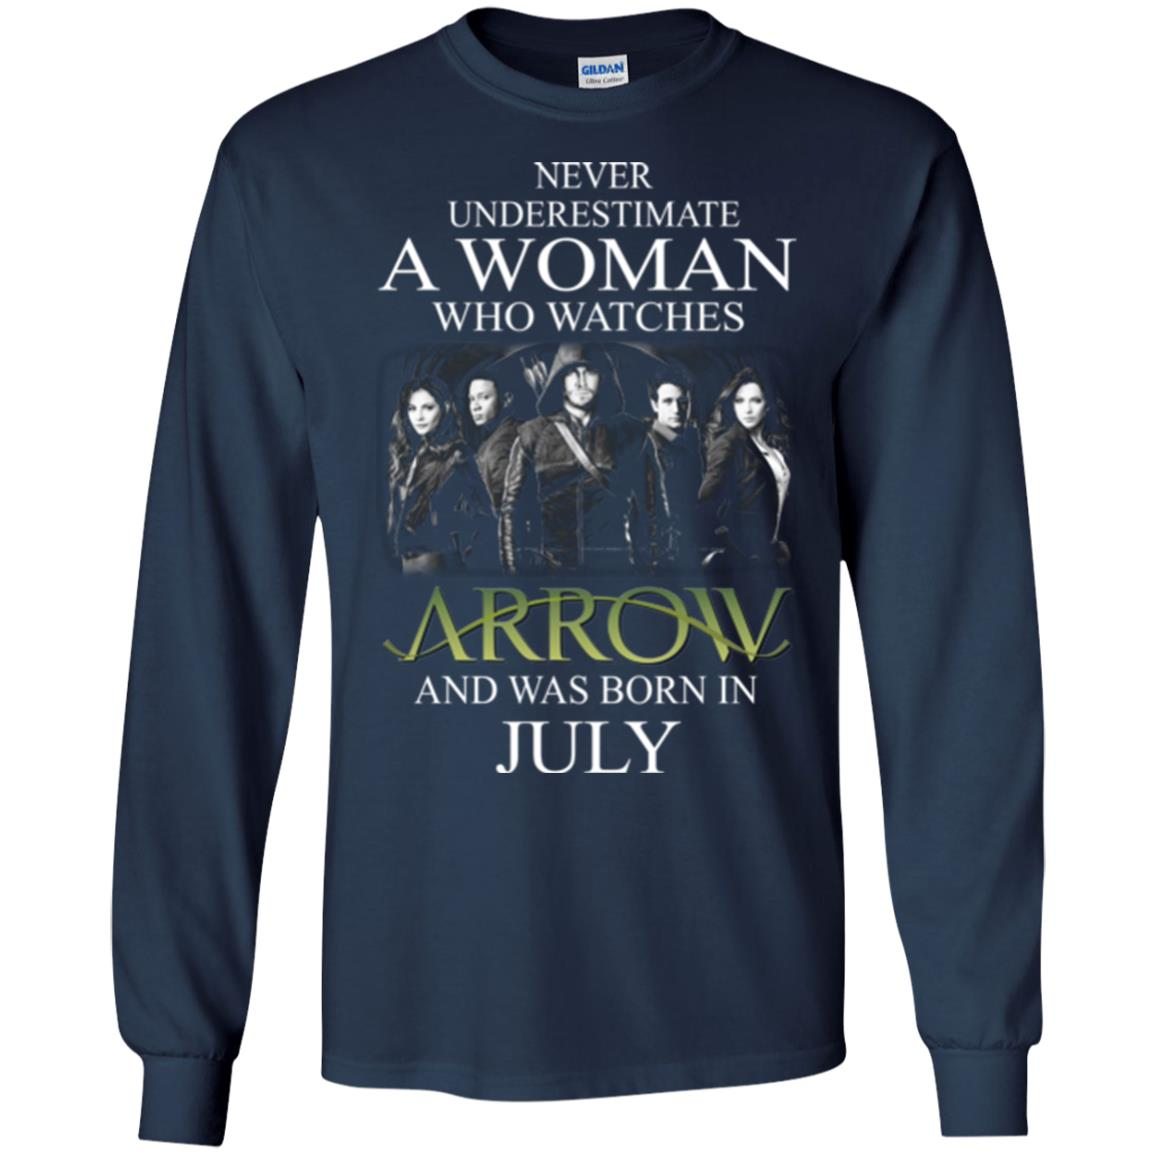 Never Underestimate A woman who watches Arrow and was born in July shirt - image 1521